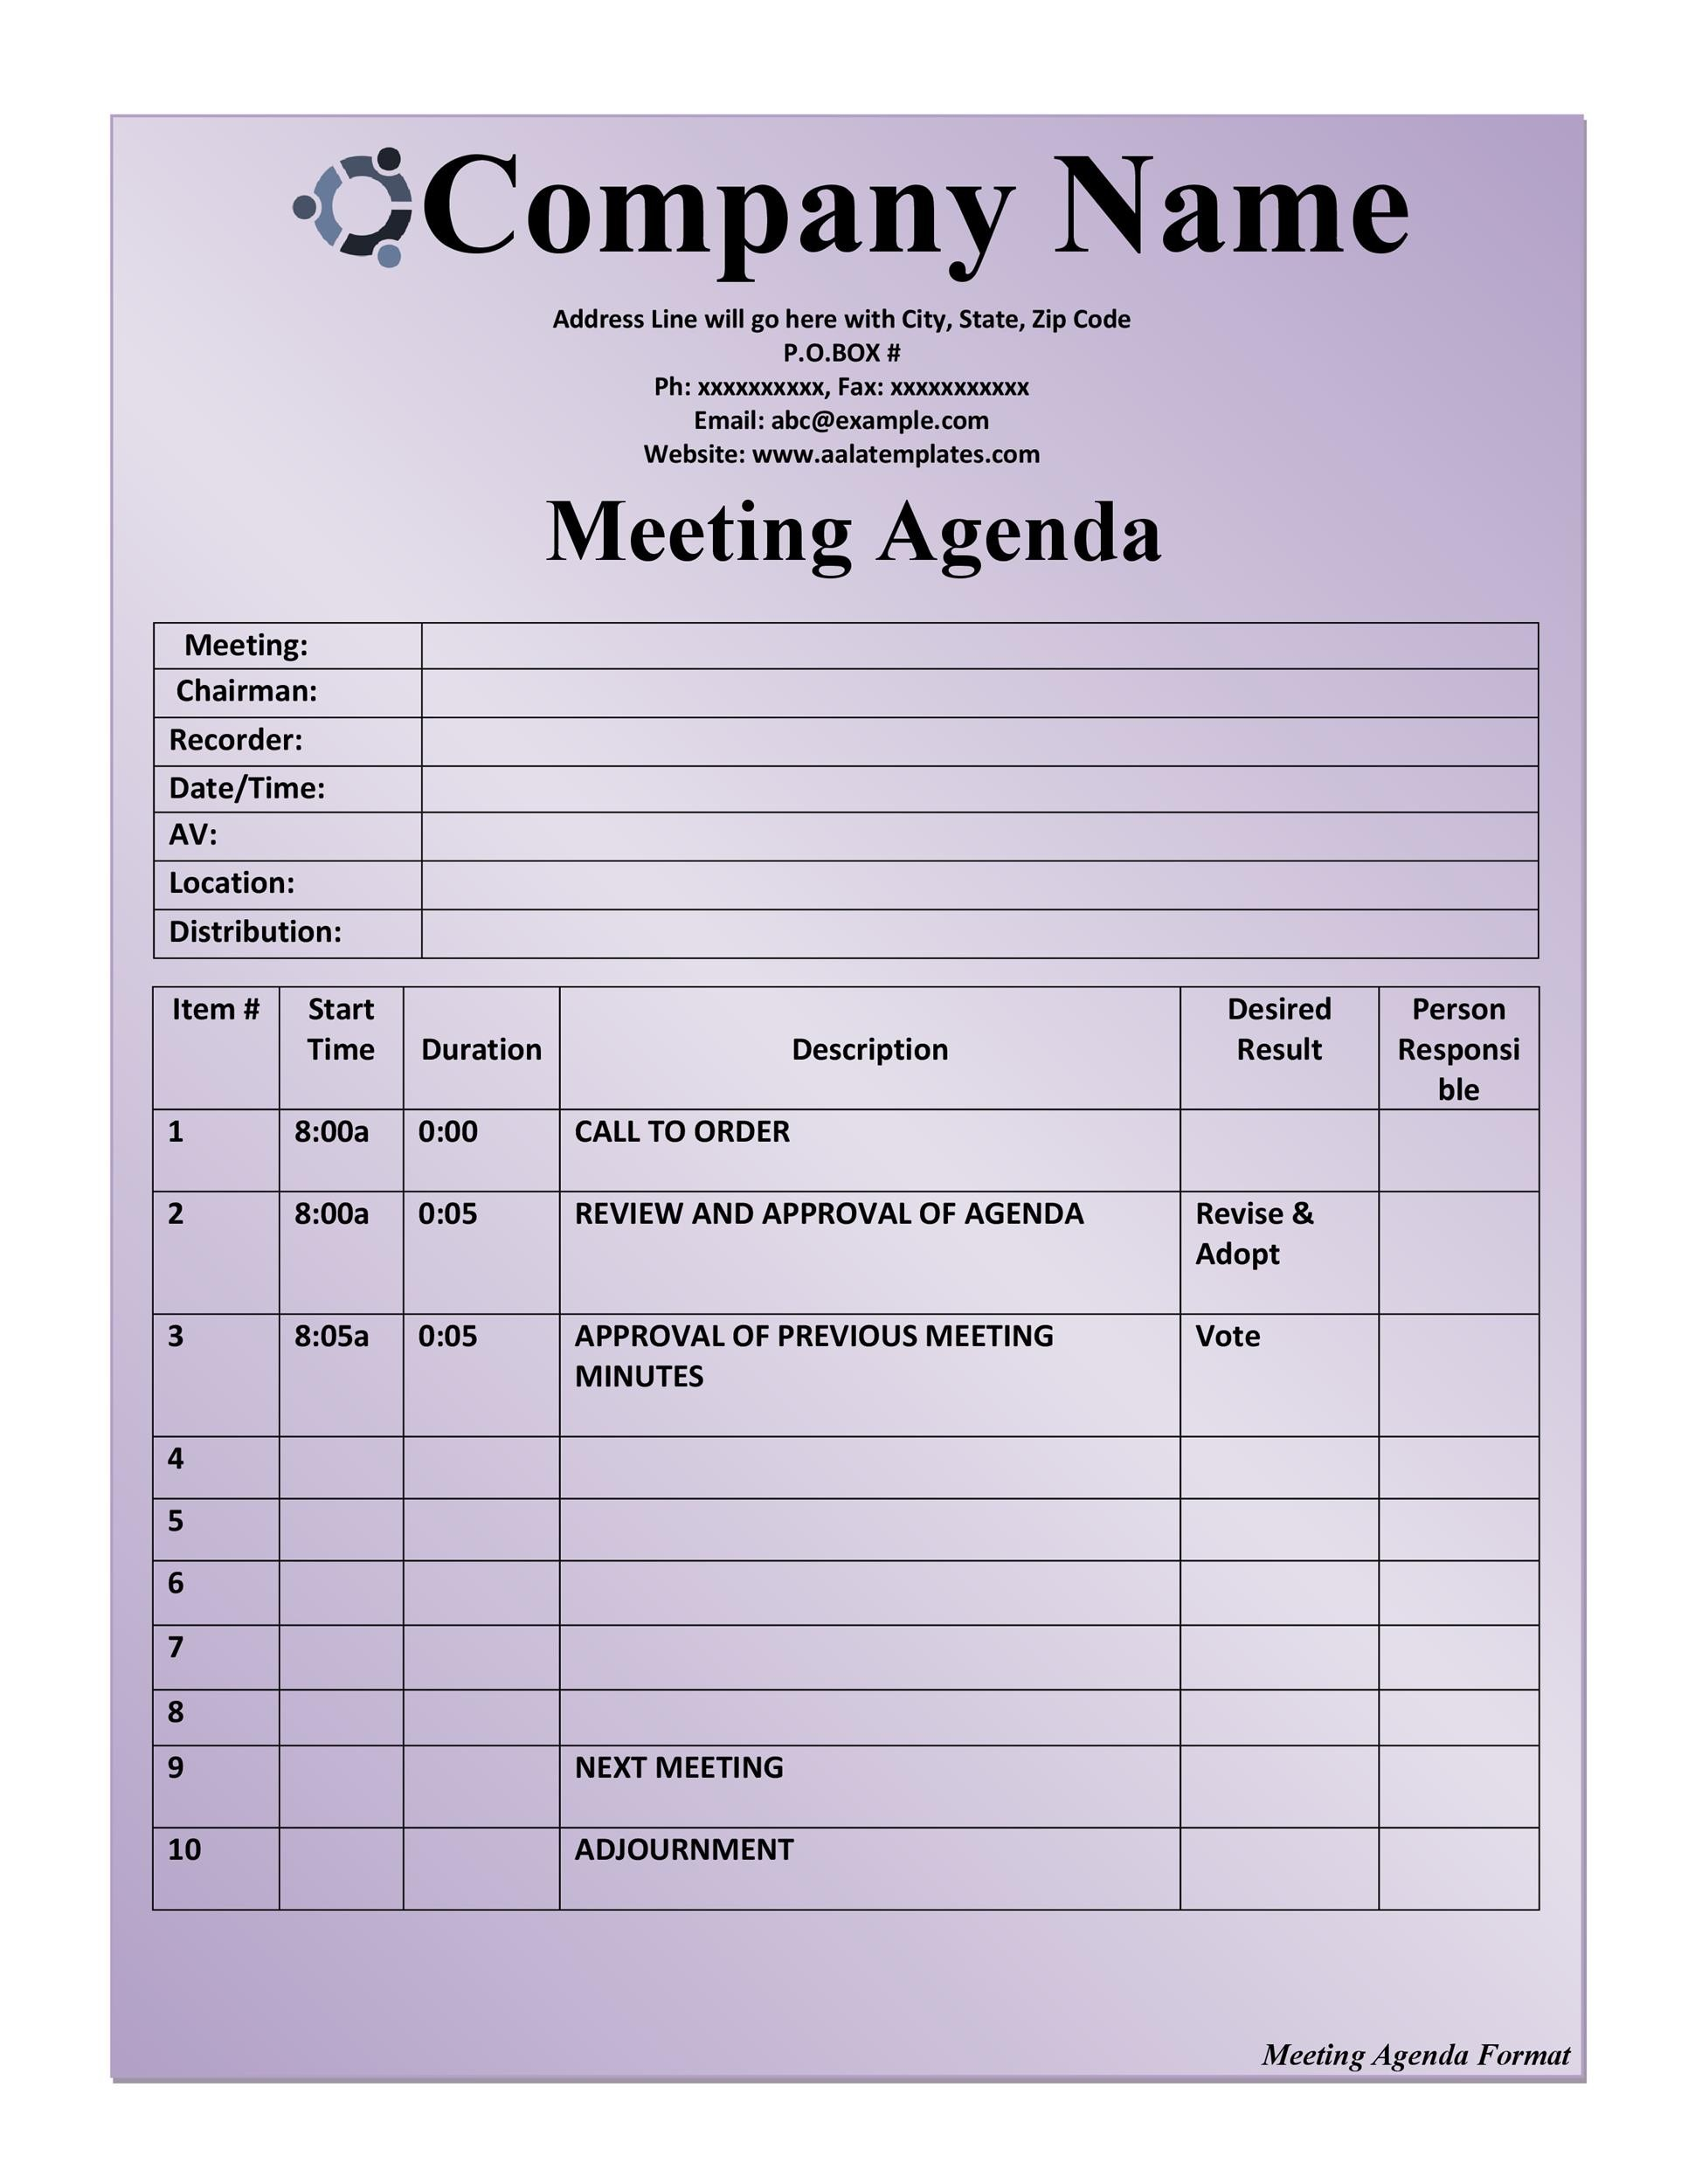 Meeting Agenda Template 20